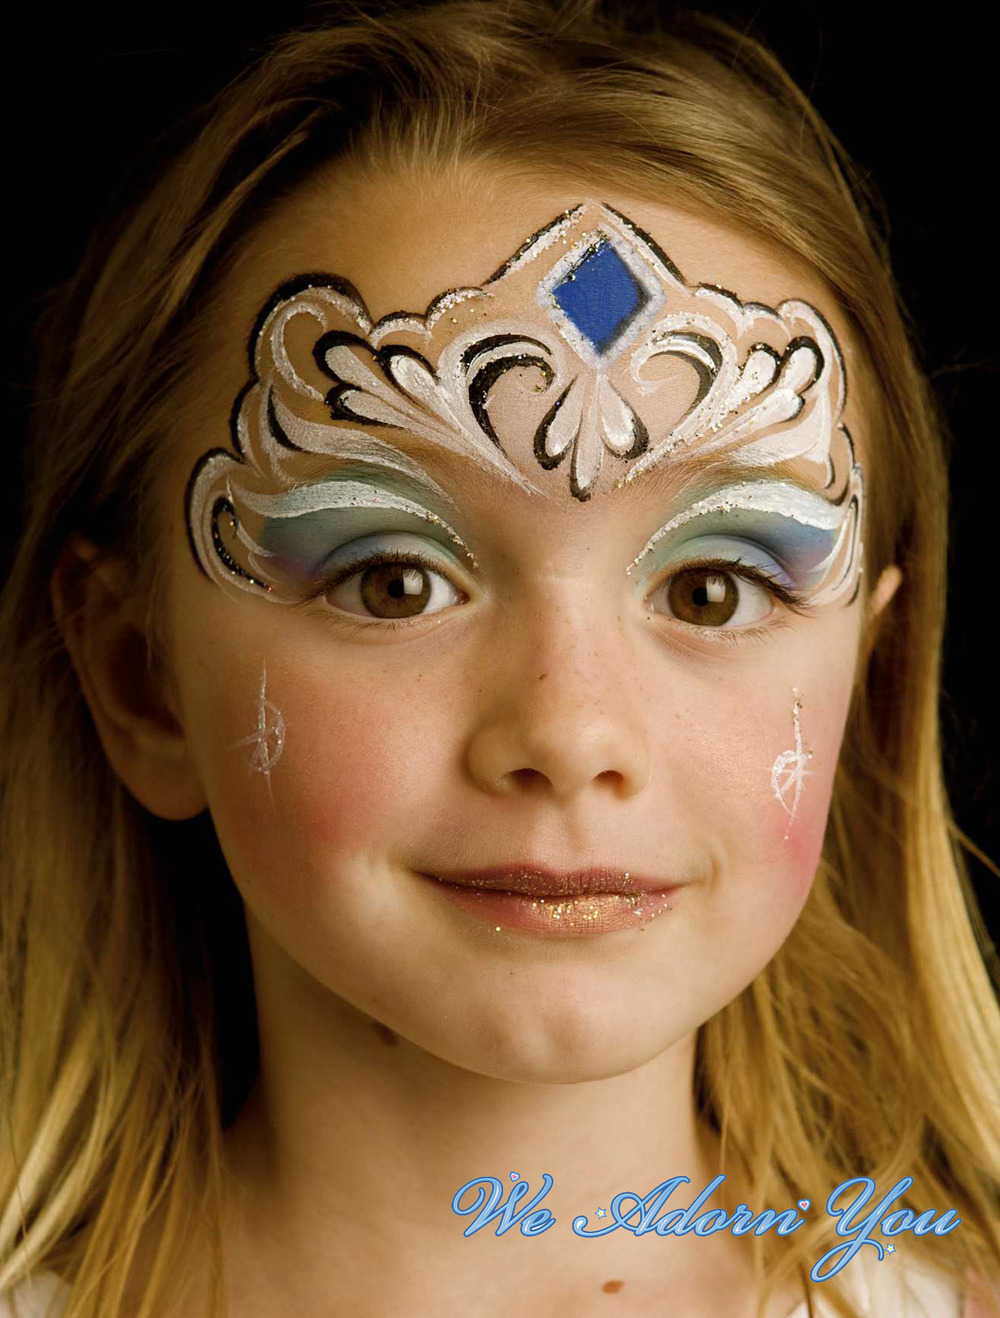 Face Painting Princess- We Adorn You.jpg